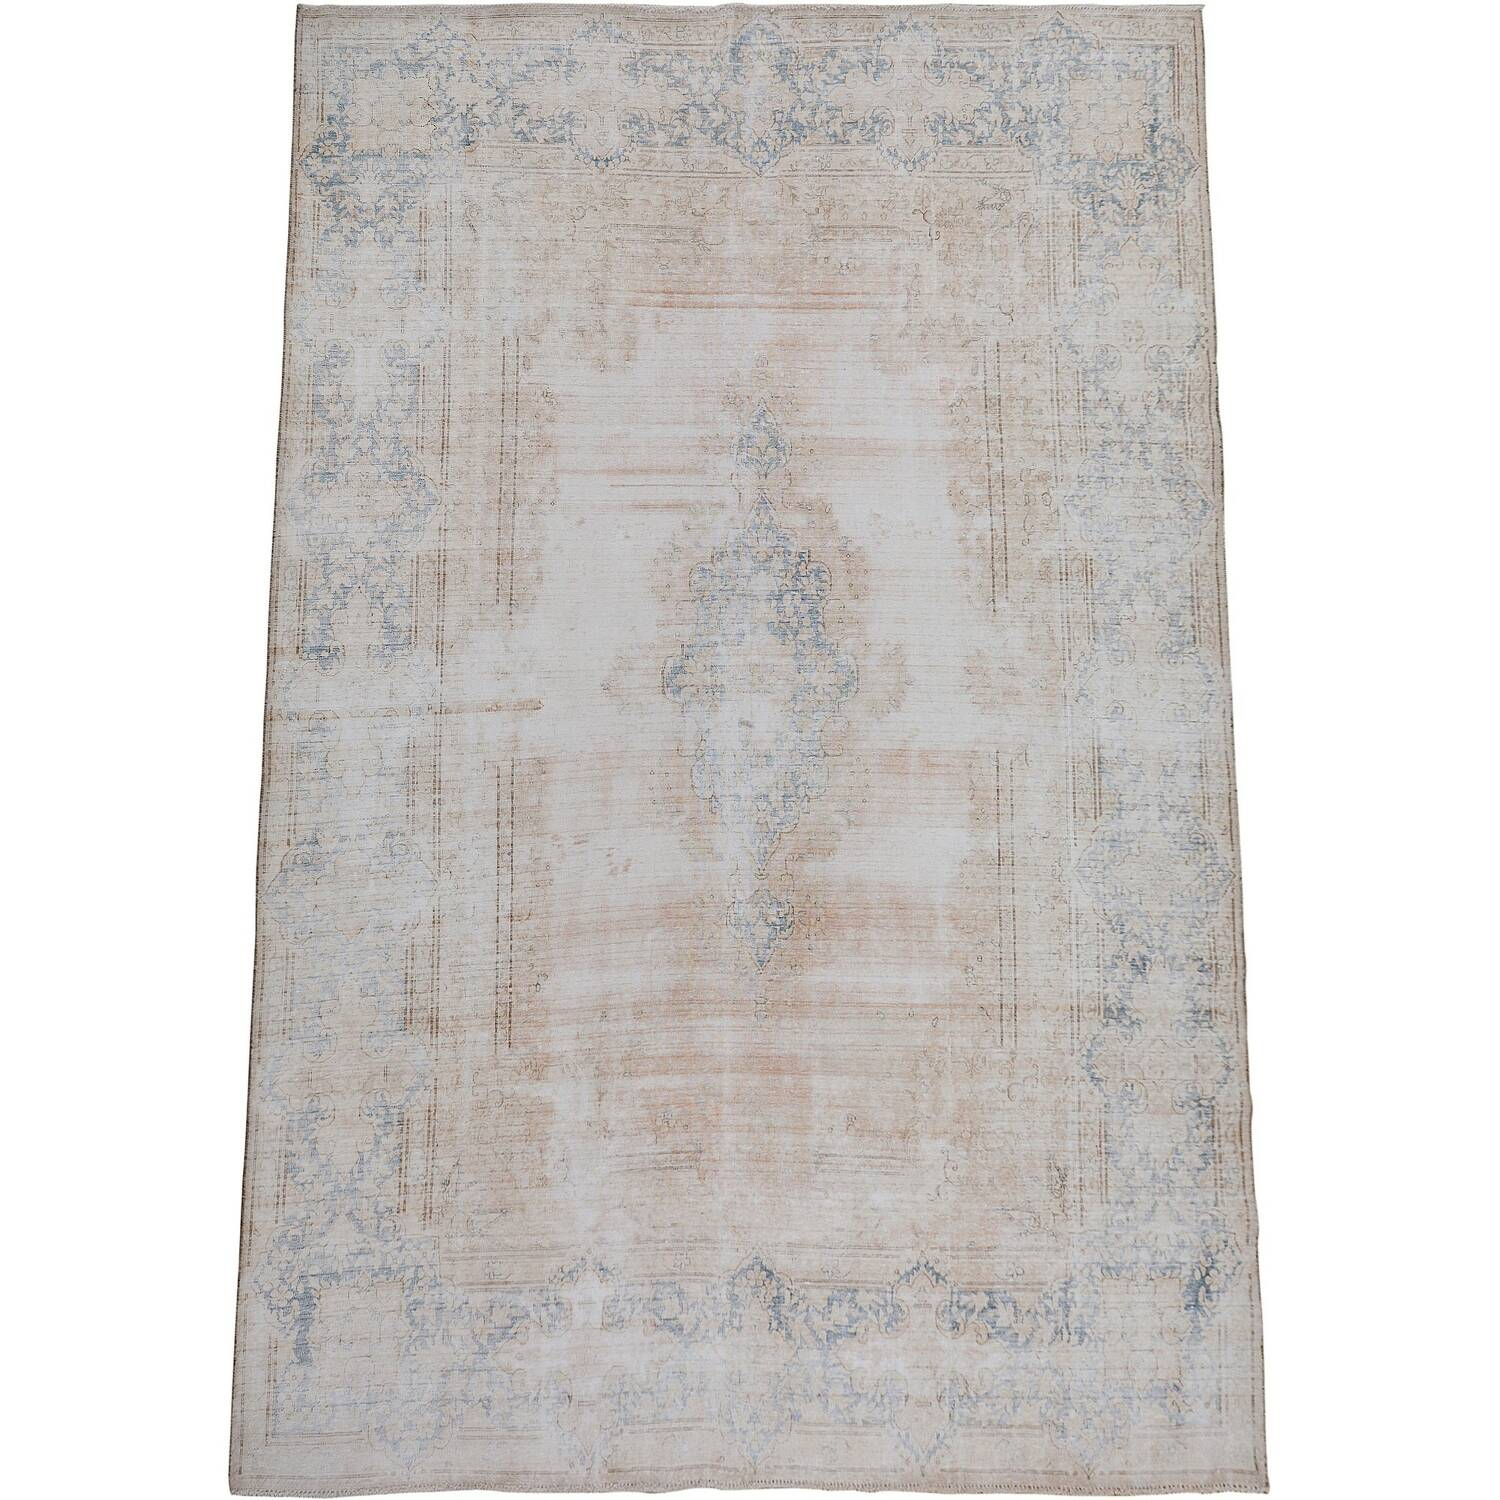 Distressed Antique Kerman Persian Muted Area Rug 10x13 image 2